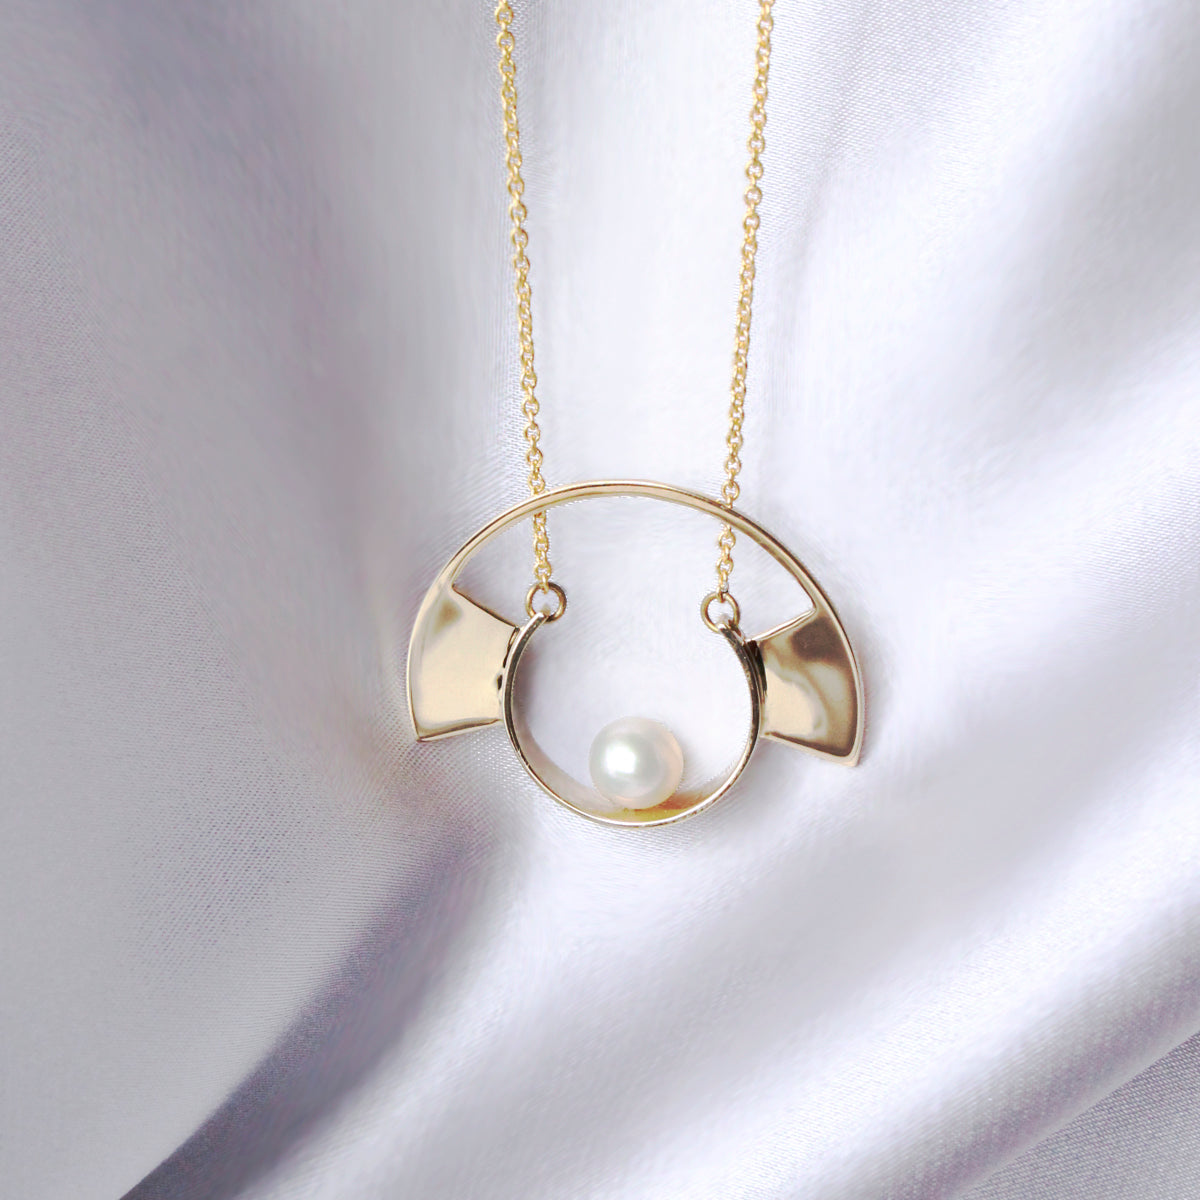 Yuyu Necklace- Pearl